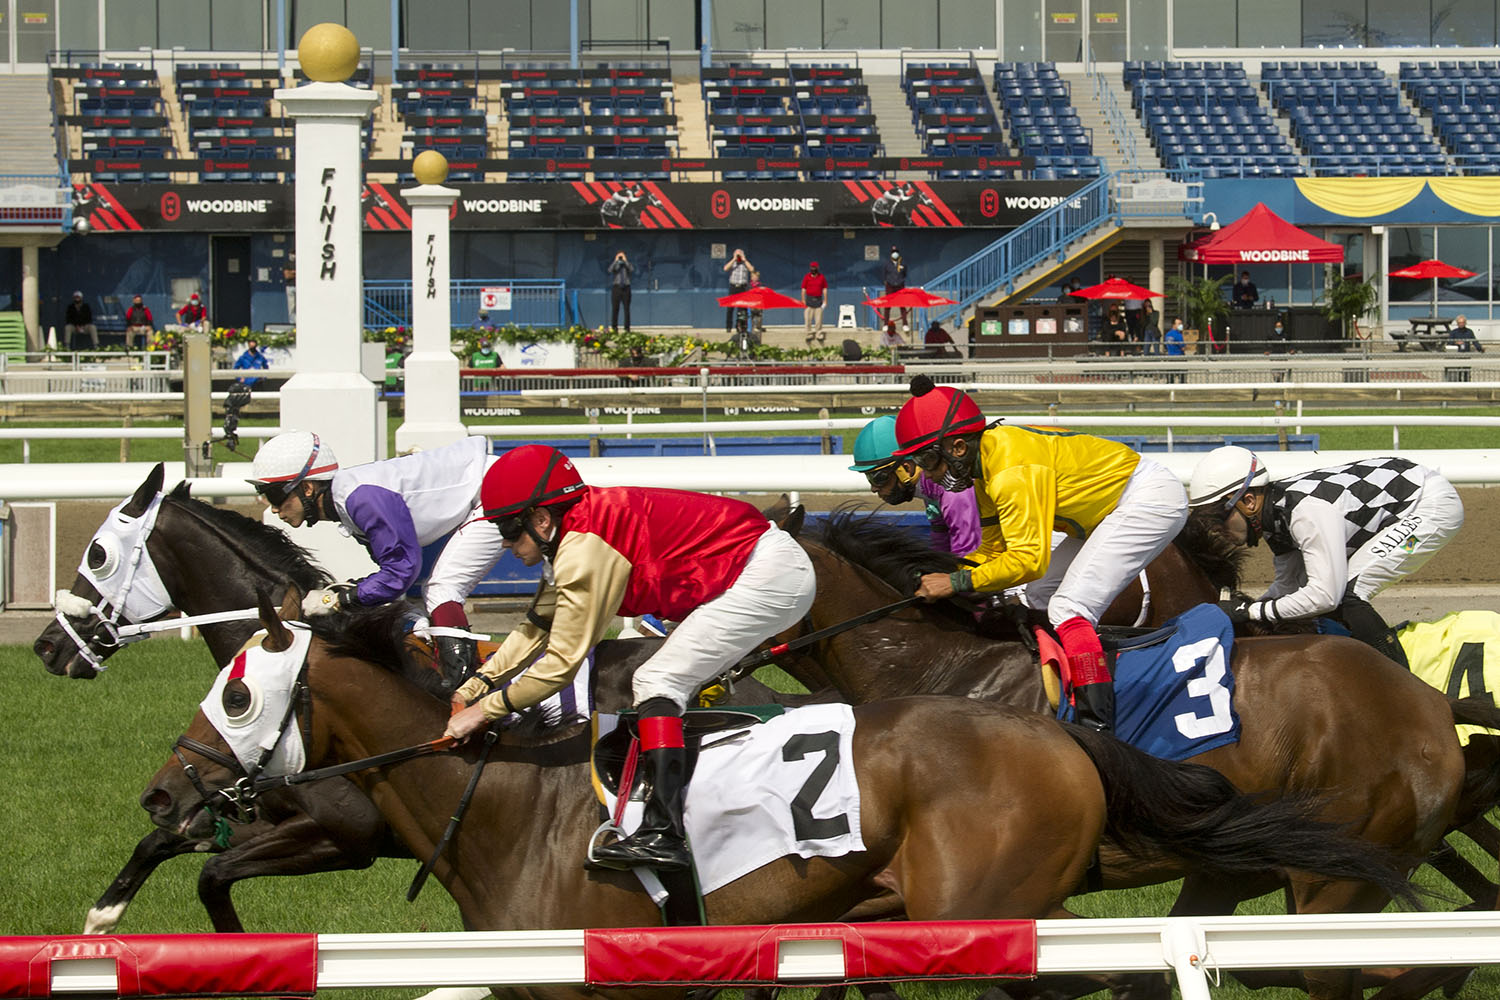 Racing action at Woodbine. (Michael Burns Photo)